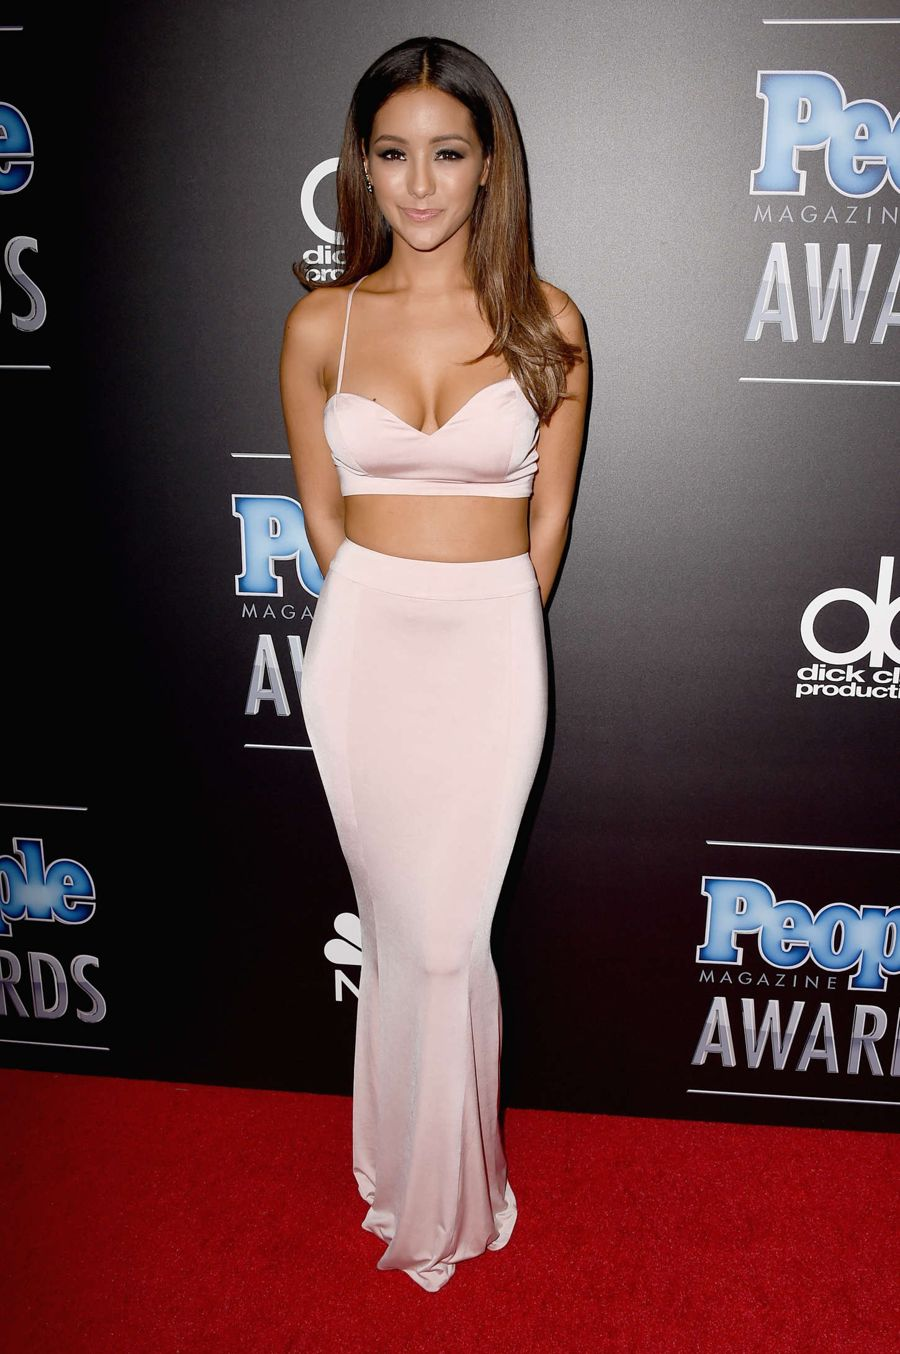 Melanie Iglesias - PEOPLE Magazine Awards in Beverly Hills